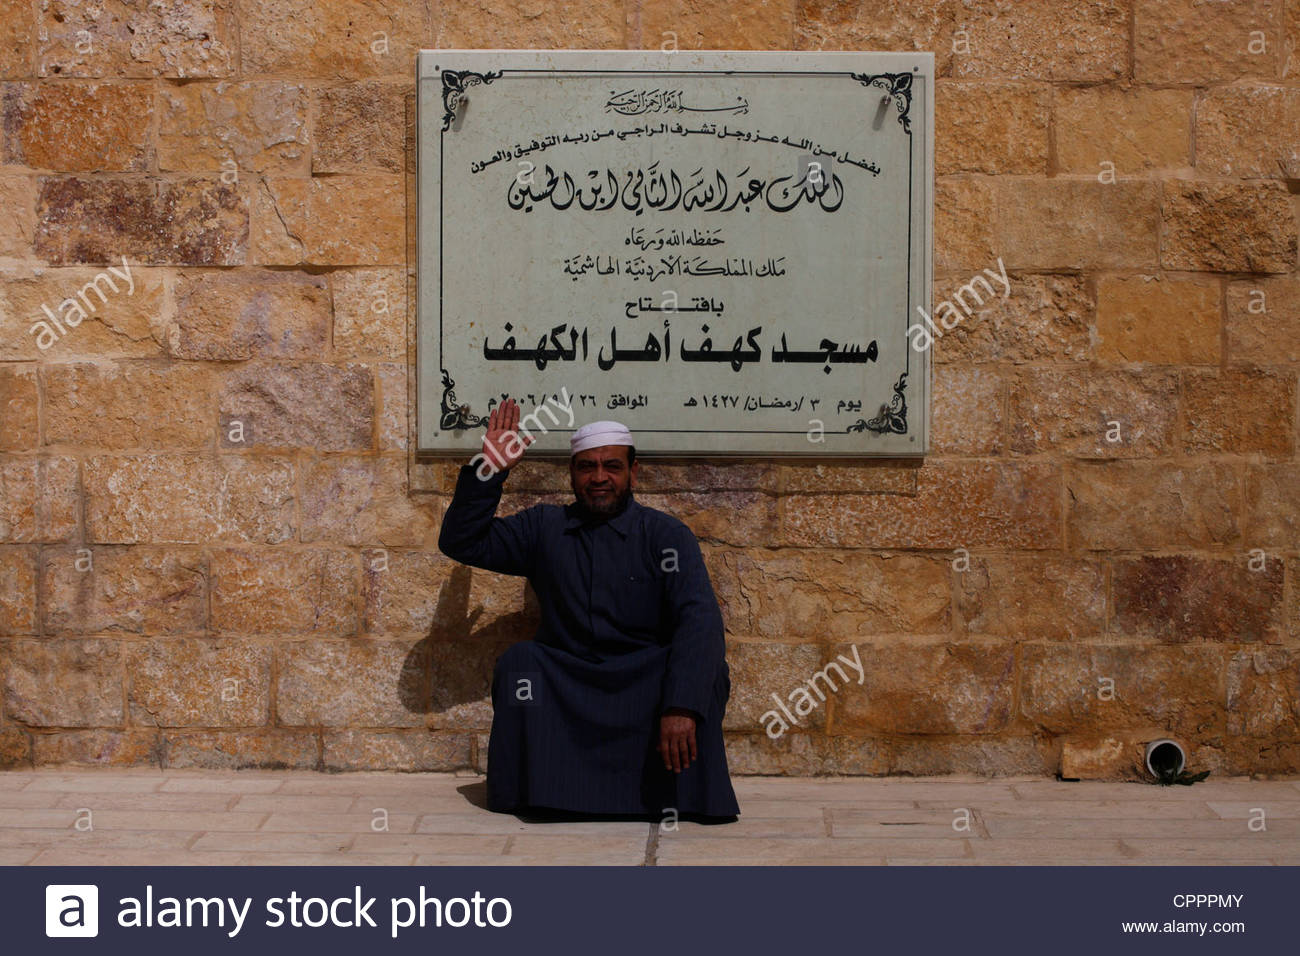 Cave of the Seven Sleepers Amman, Muslim man at Kahf Al-Raqim mosque or The Cave of The Seven ...